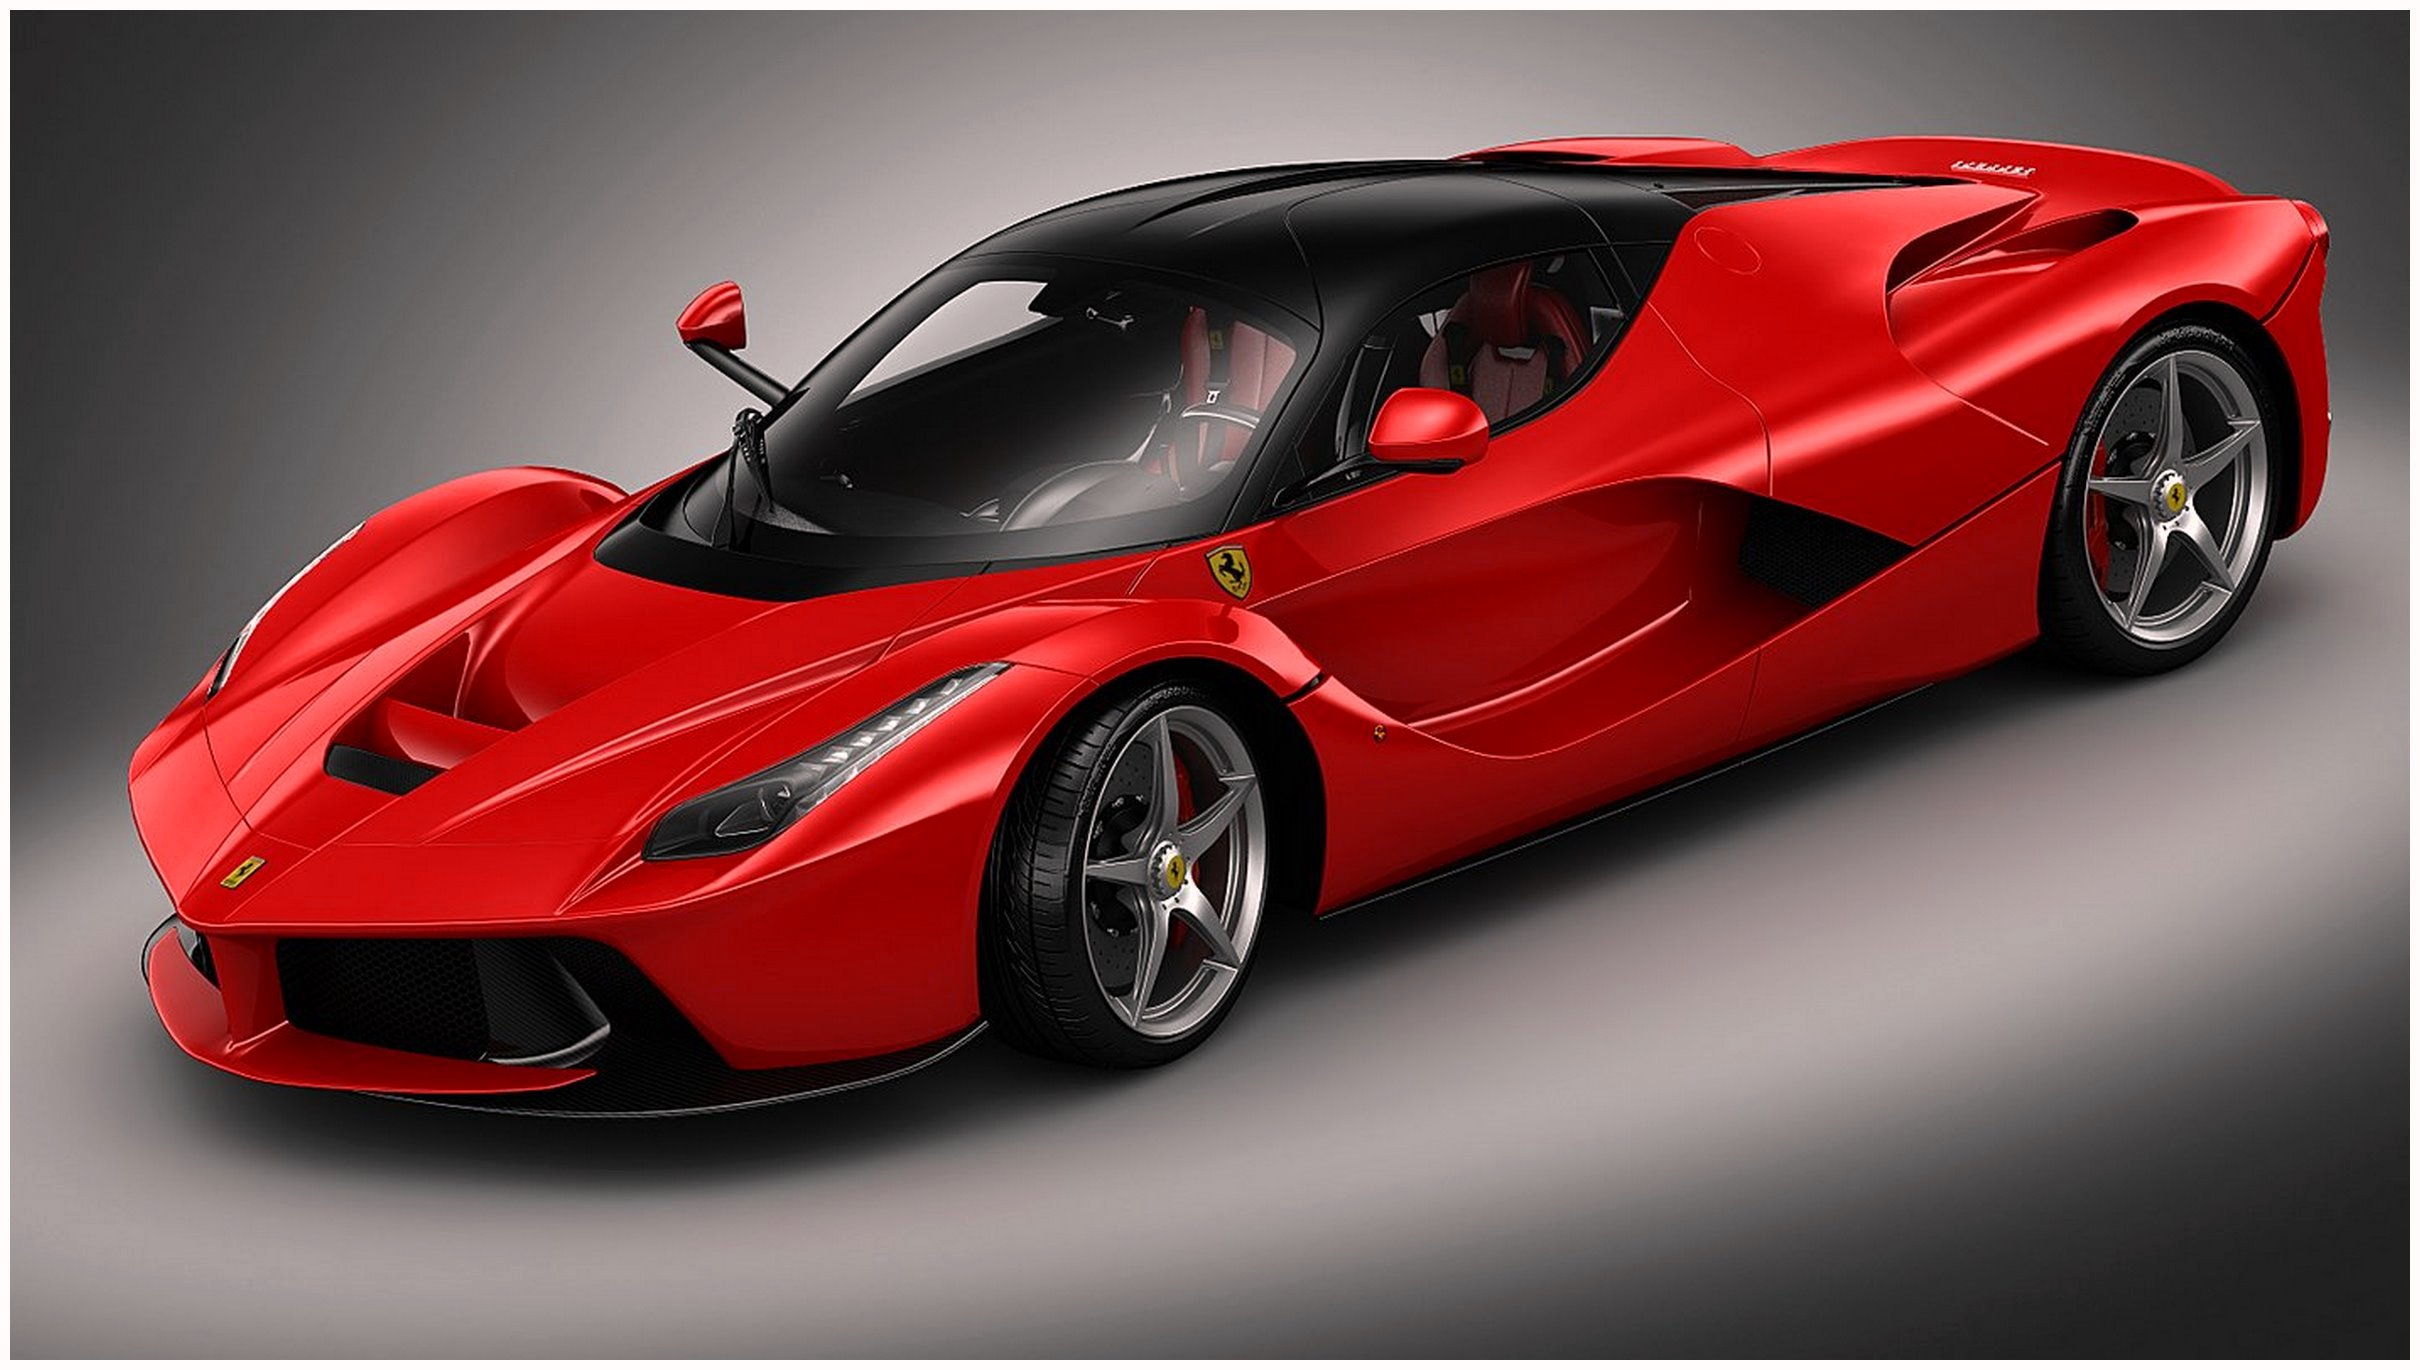 Ferrari LaFerrari 3D Model HD wallpapers 4k images download free